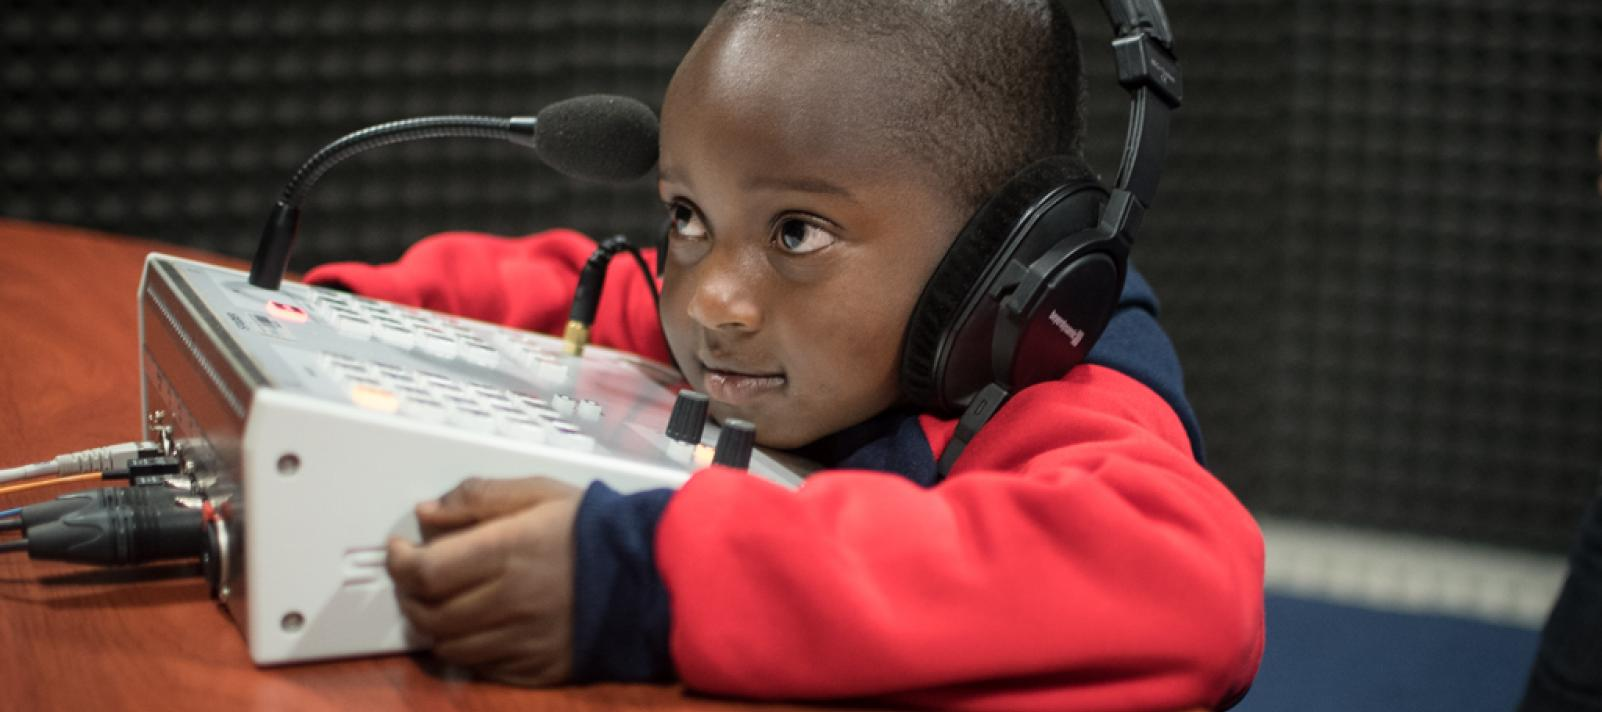 Small boy in Rwanda radio station with headphones